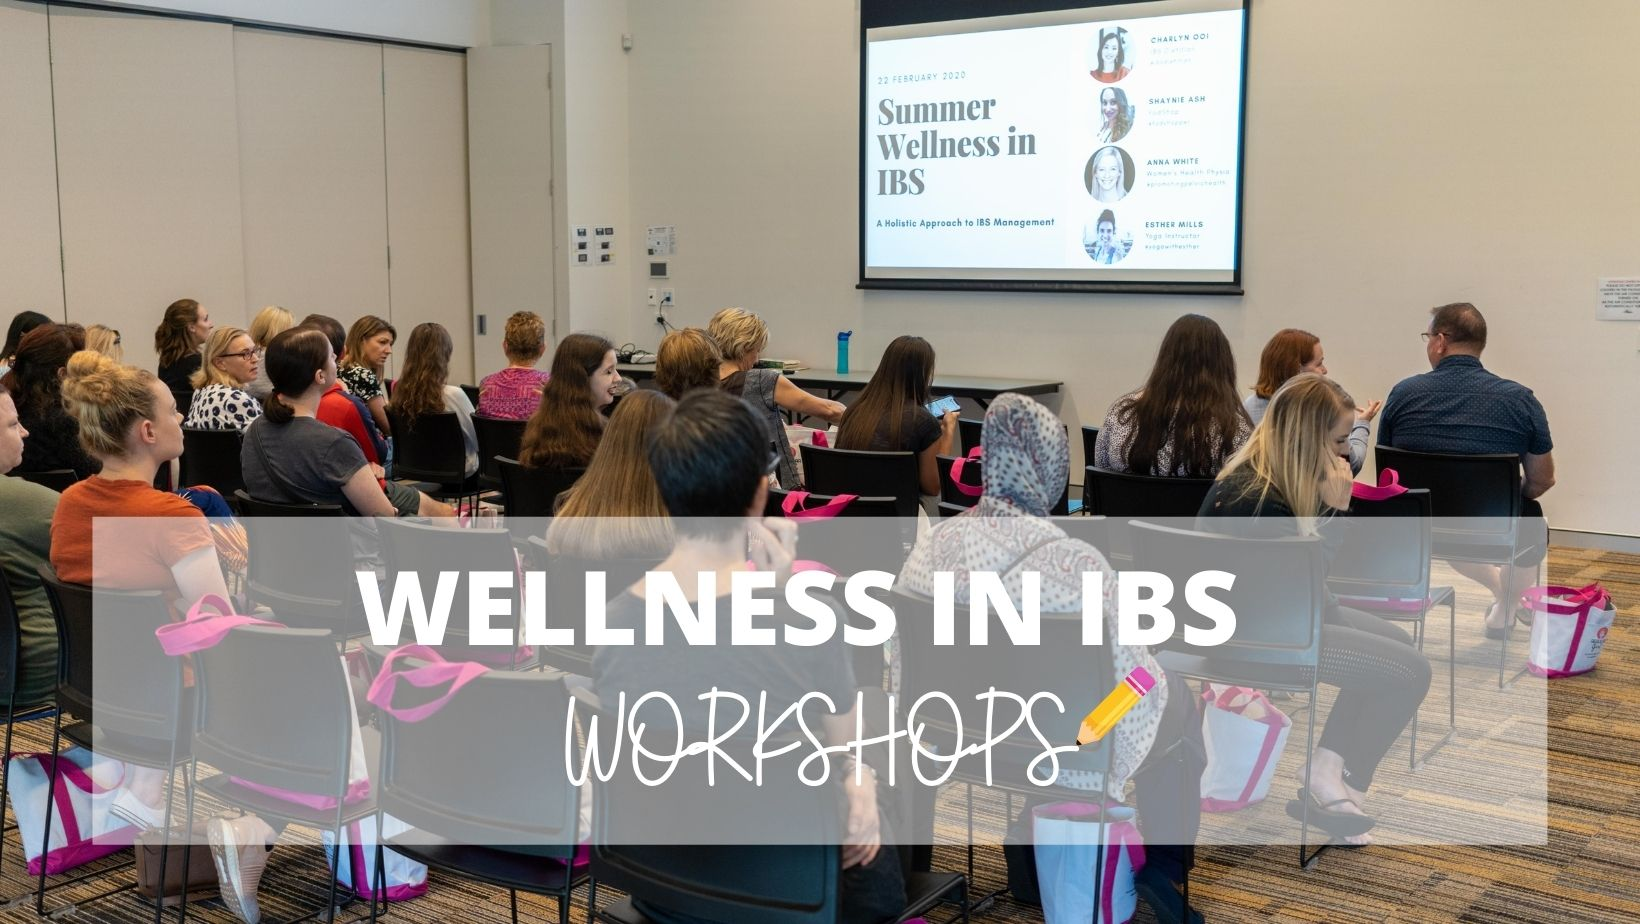 FodShop's Wellness in IBS Workshops